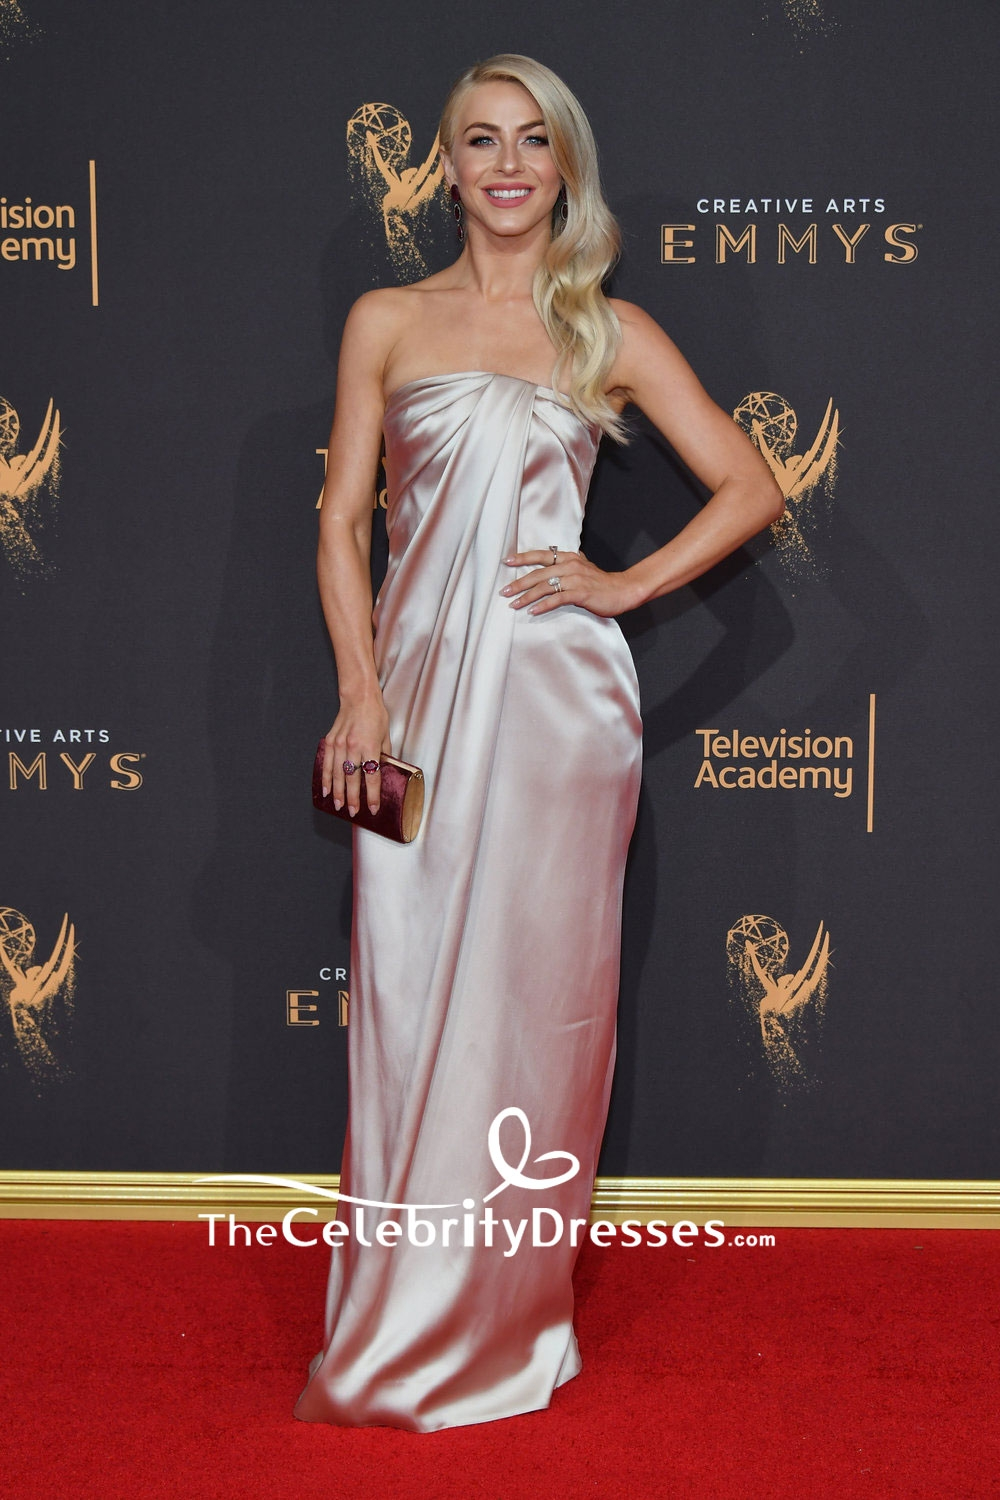 Julianne Hough Strapless Evening Dress 2017 Creative Arts Emmy Awards - TheCelebrityDresses